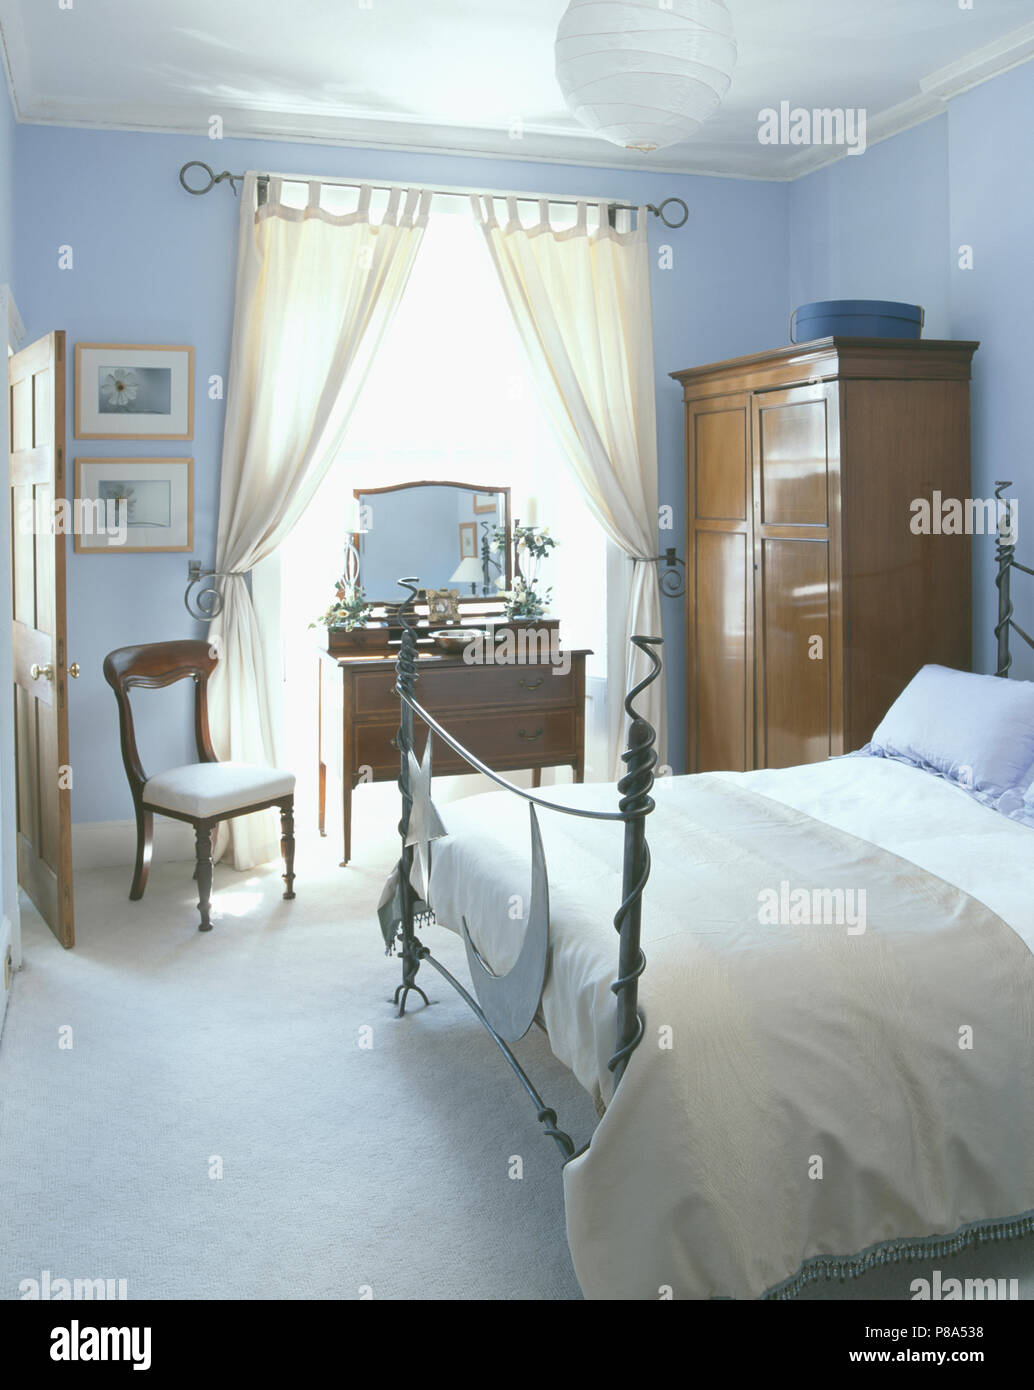 White Wrought Iron Antique Bed High Resolution Stock Photography And Images Alamy